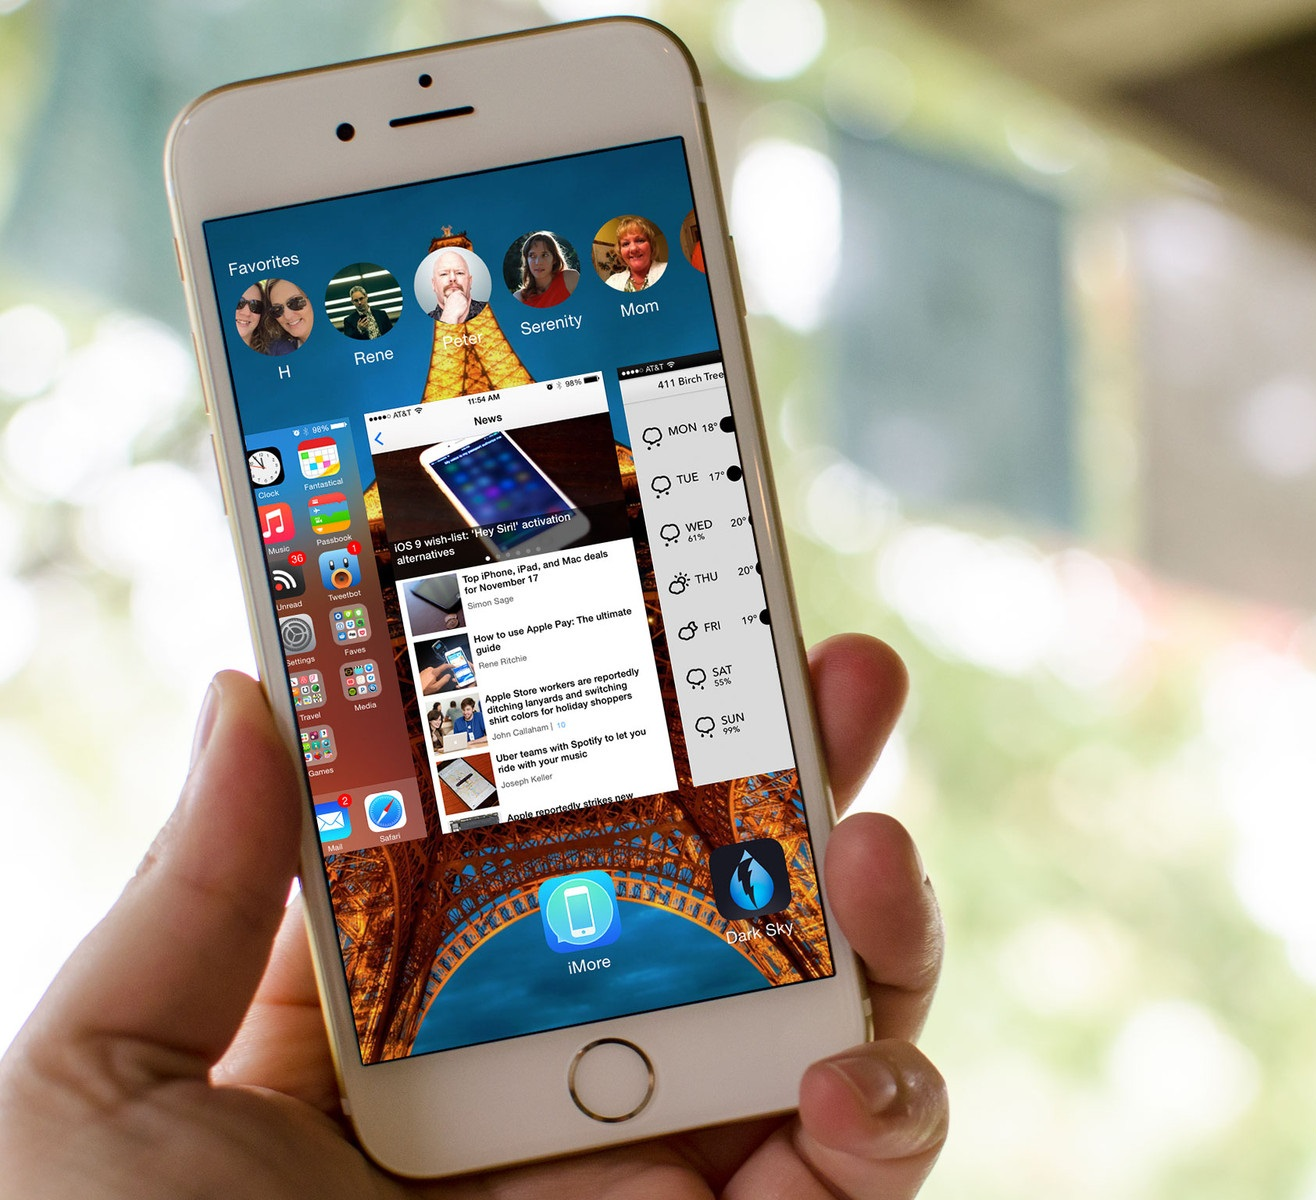 favorite_contacts_app_switcher_iphone_6